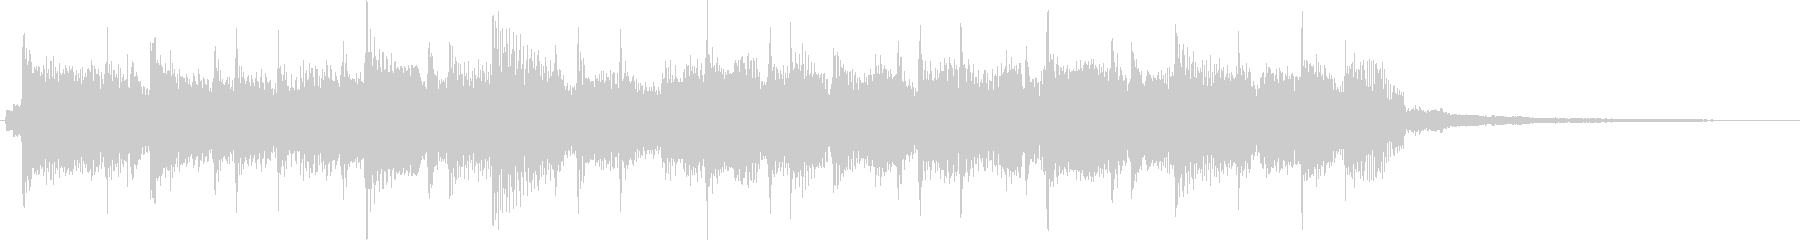 Bright and refreshing pop rock jingle's unreproduced waveform